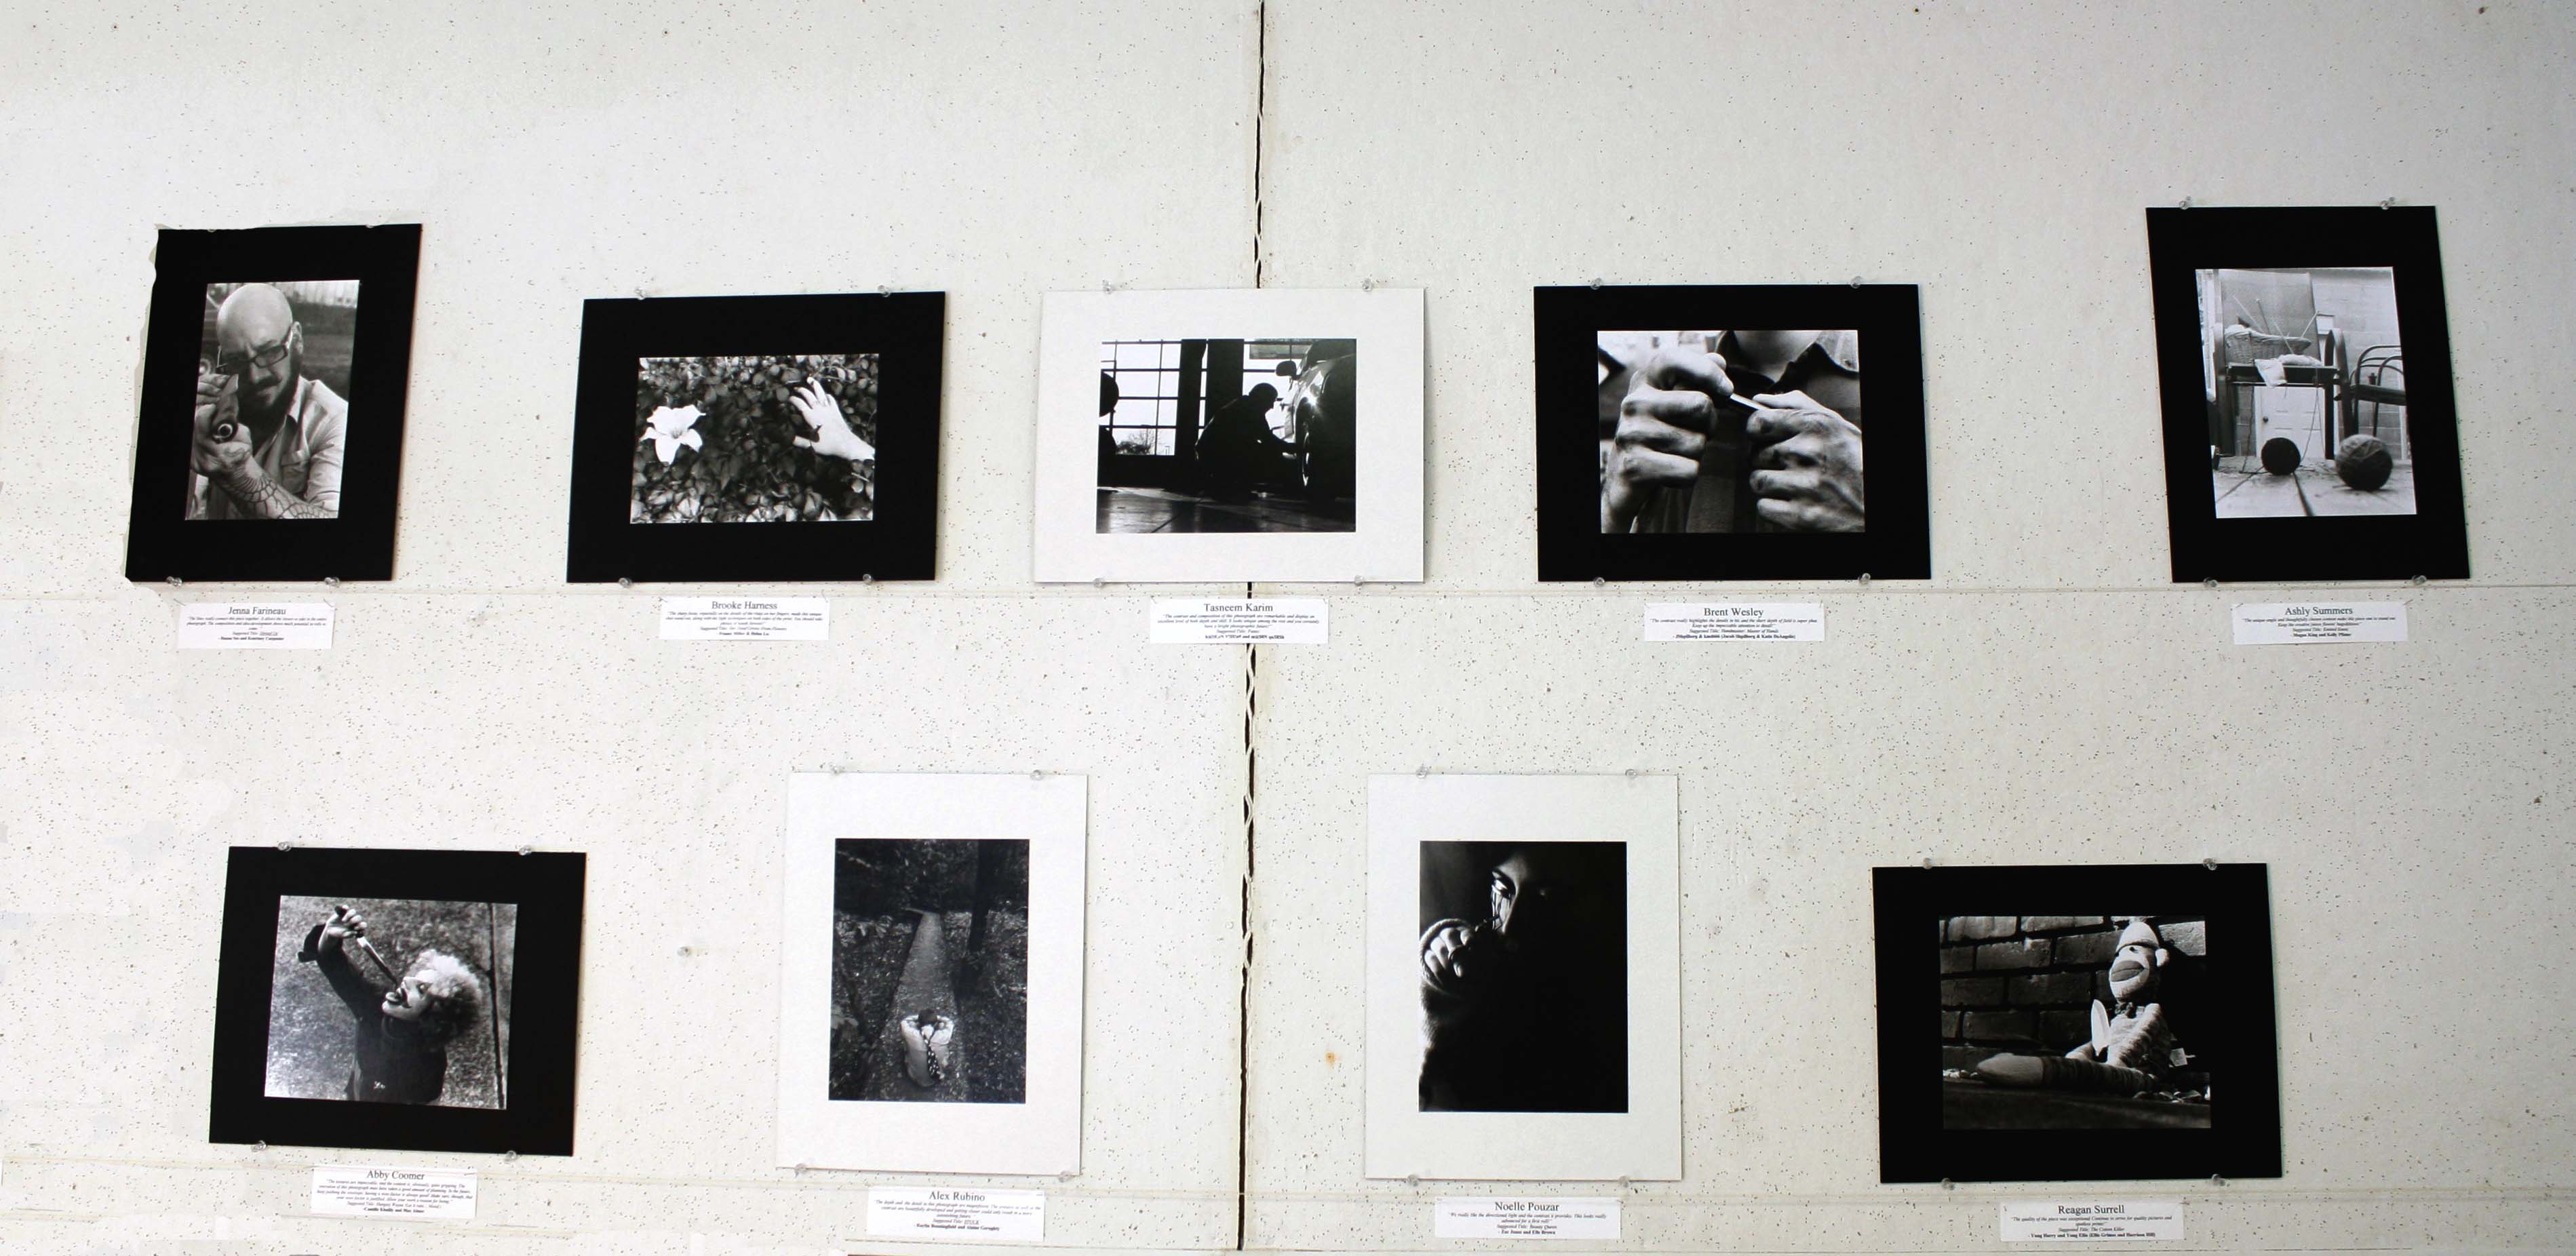 Mr.Curtis hangs some of the best photographs taken by his students on a wall in his room